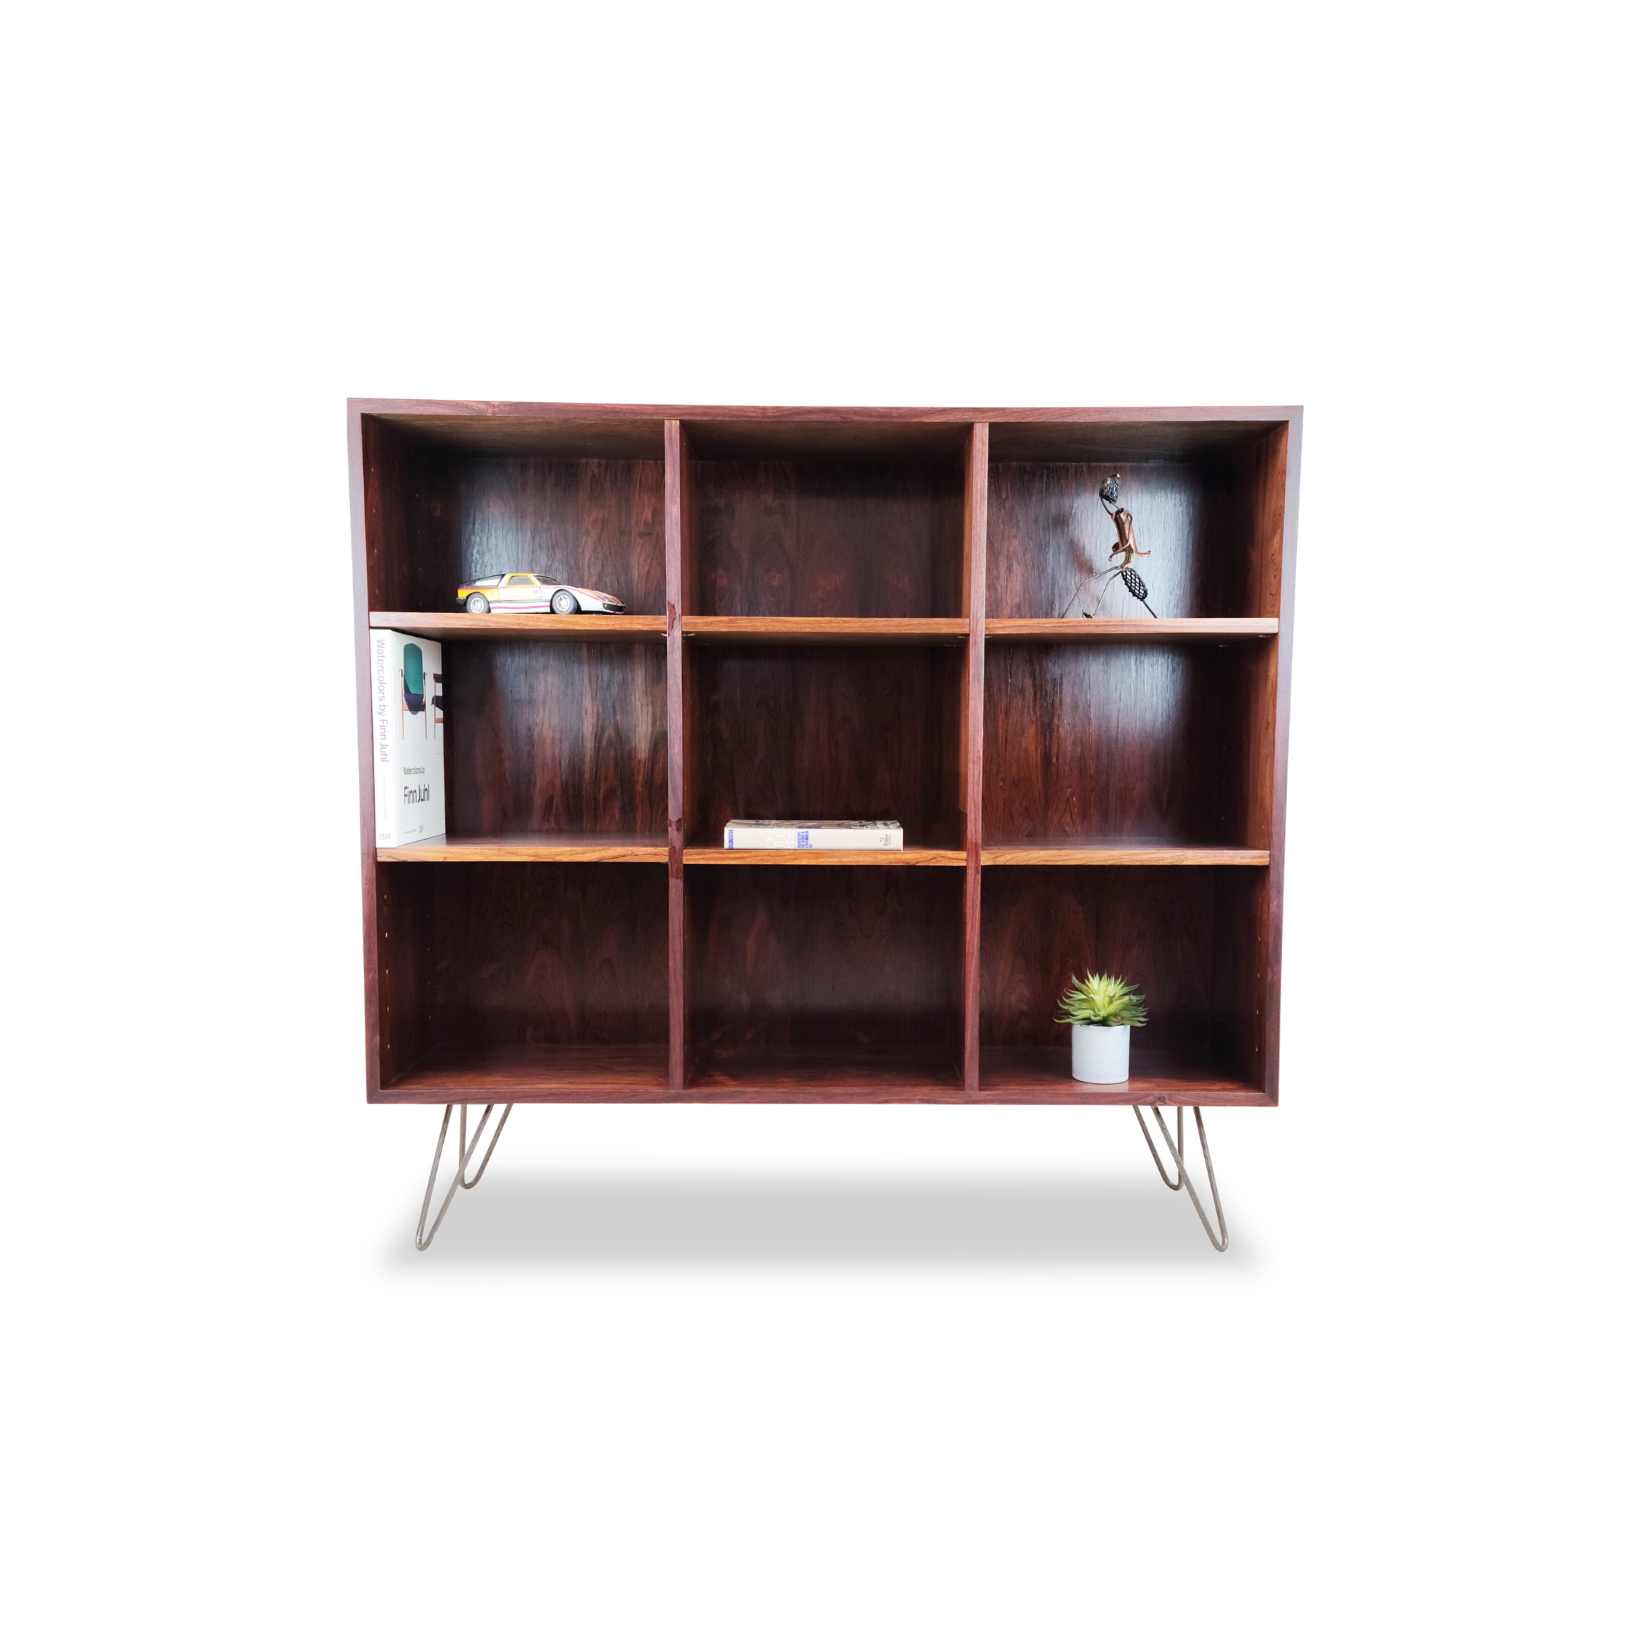 Rosewood Bookcase with Modular Shelving